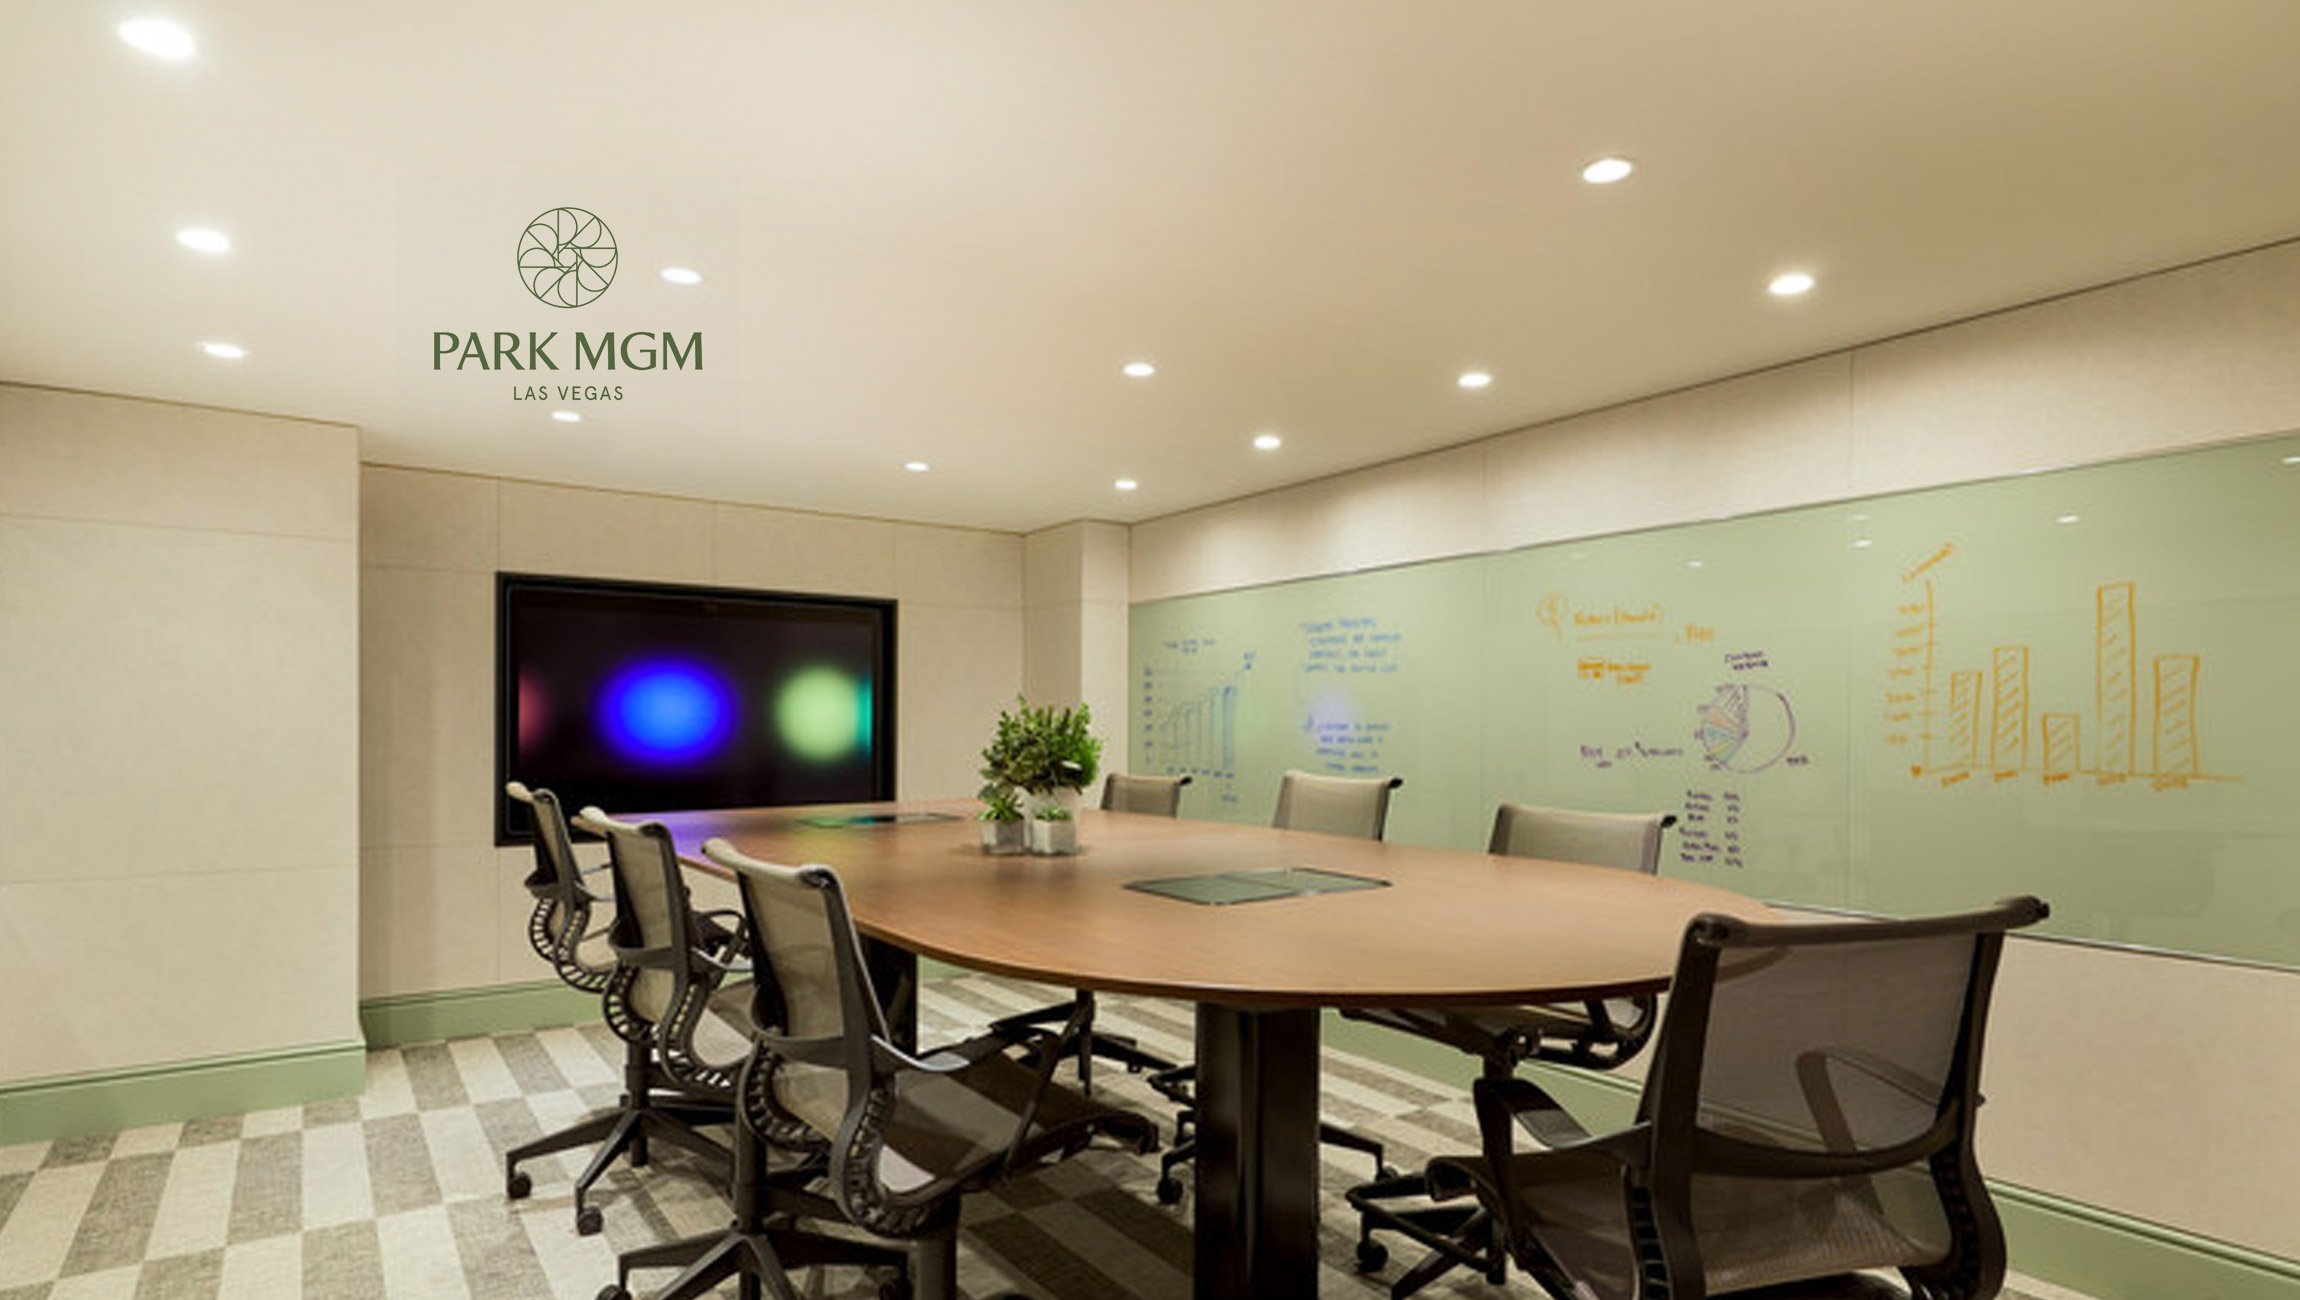 Park MGM's New Ideation Studio Introduces First-Of-Its-Kind Convention Experience with Cisco Webex Teams